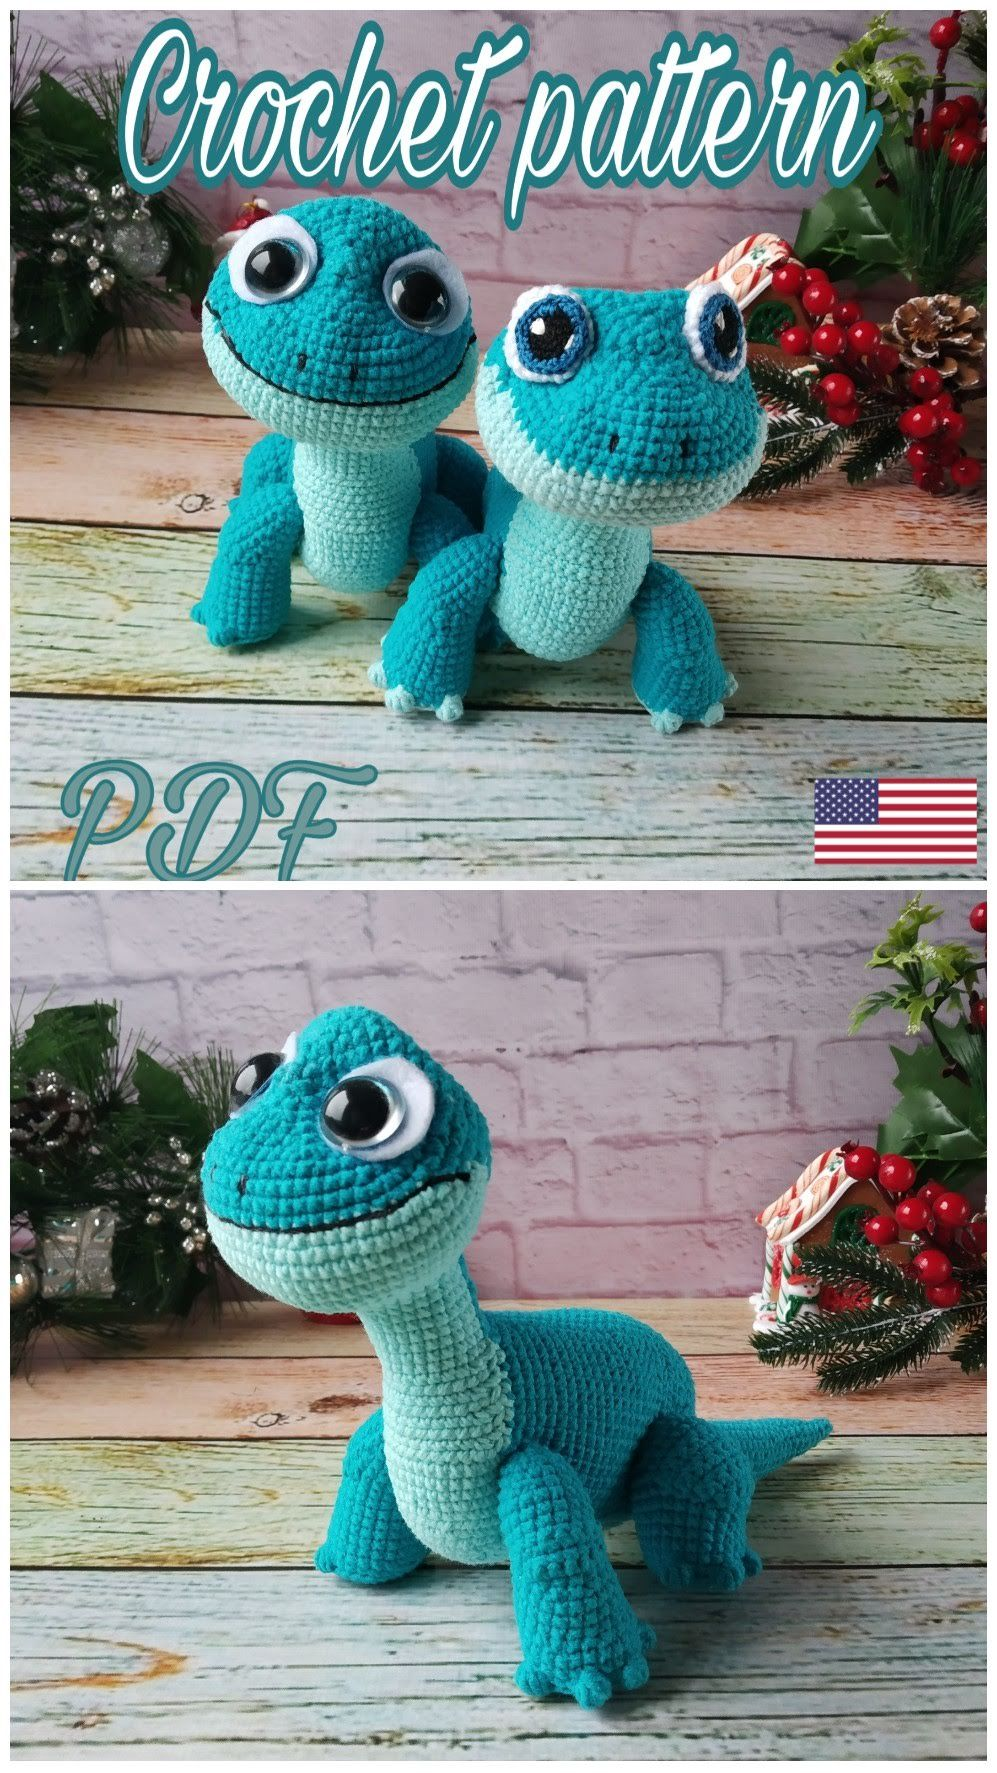 Bearded Dragon (lizard) amigurumi crochet pattern | Crochet beard ... | 1773x997